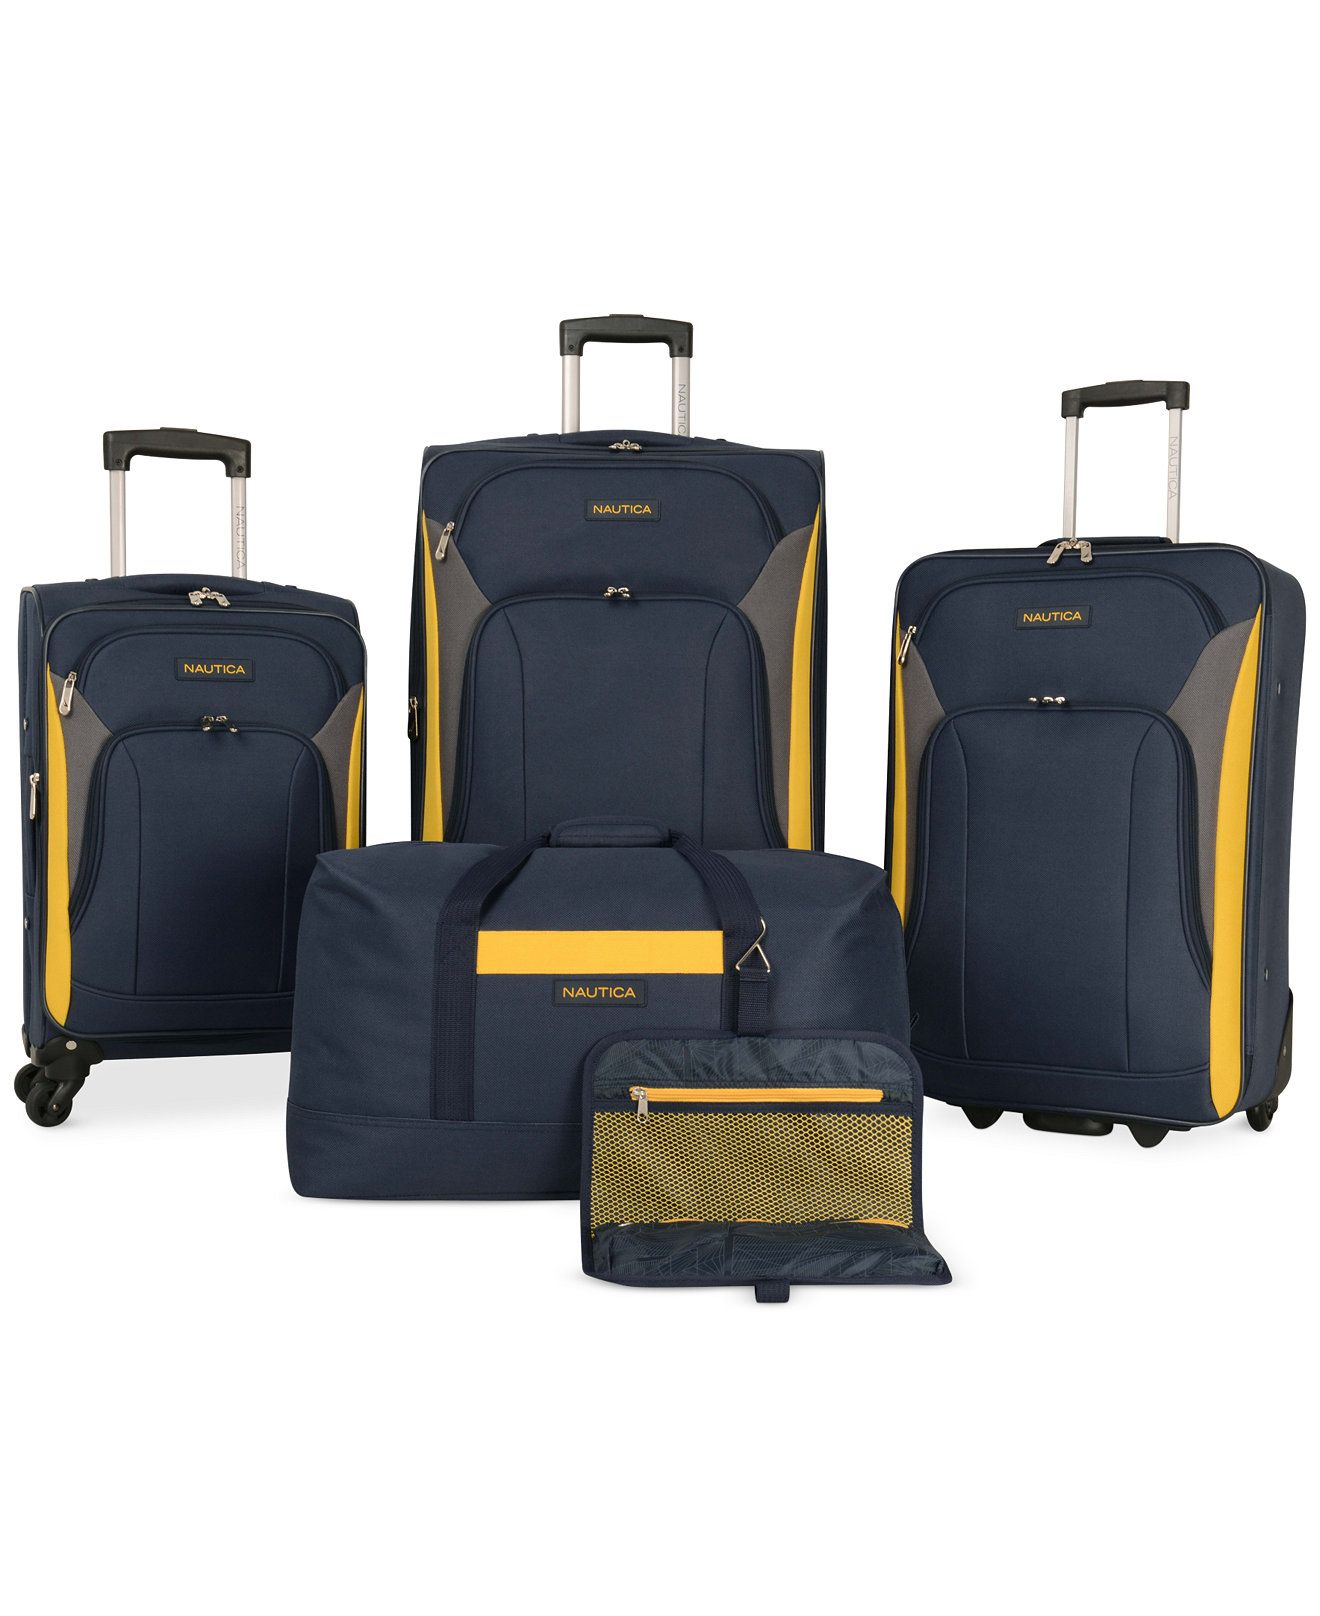 Nautica Open Seas 5 Piece Spinner Luggage Set - Luggage Sets ...